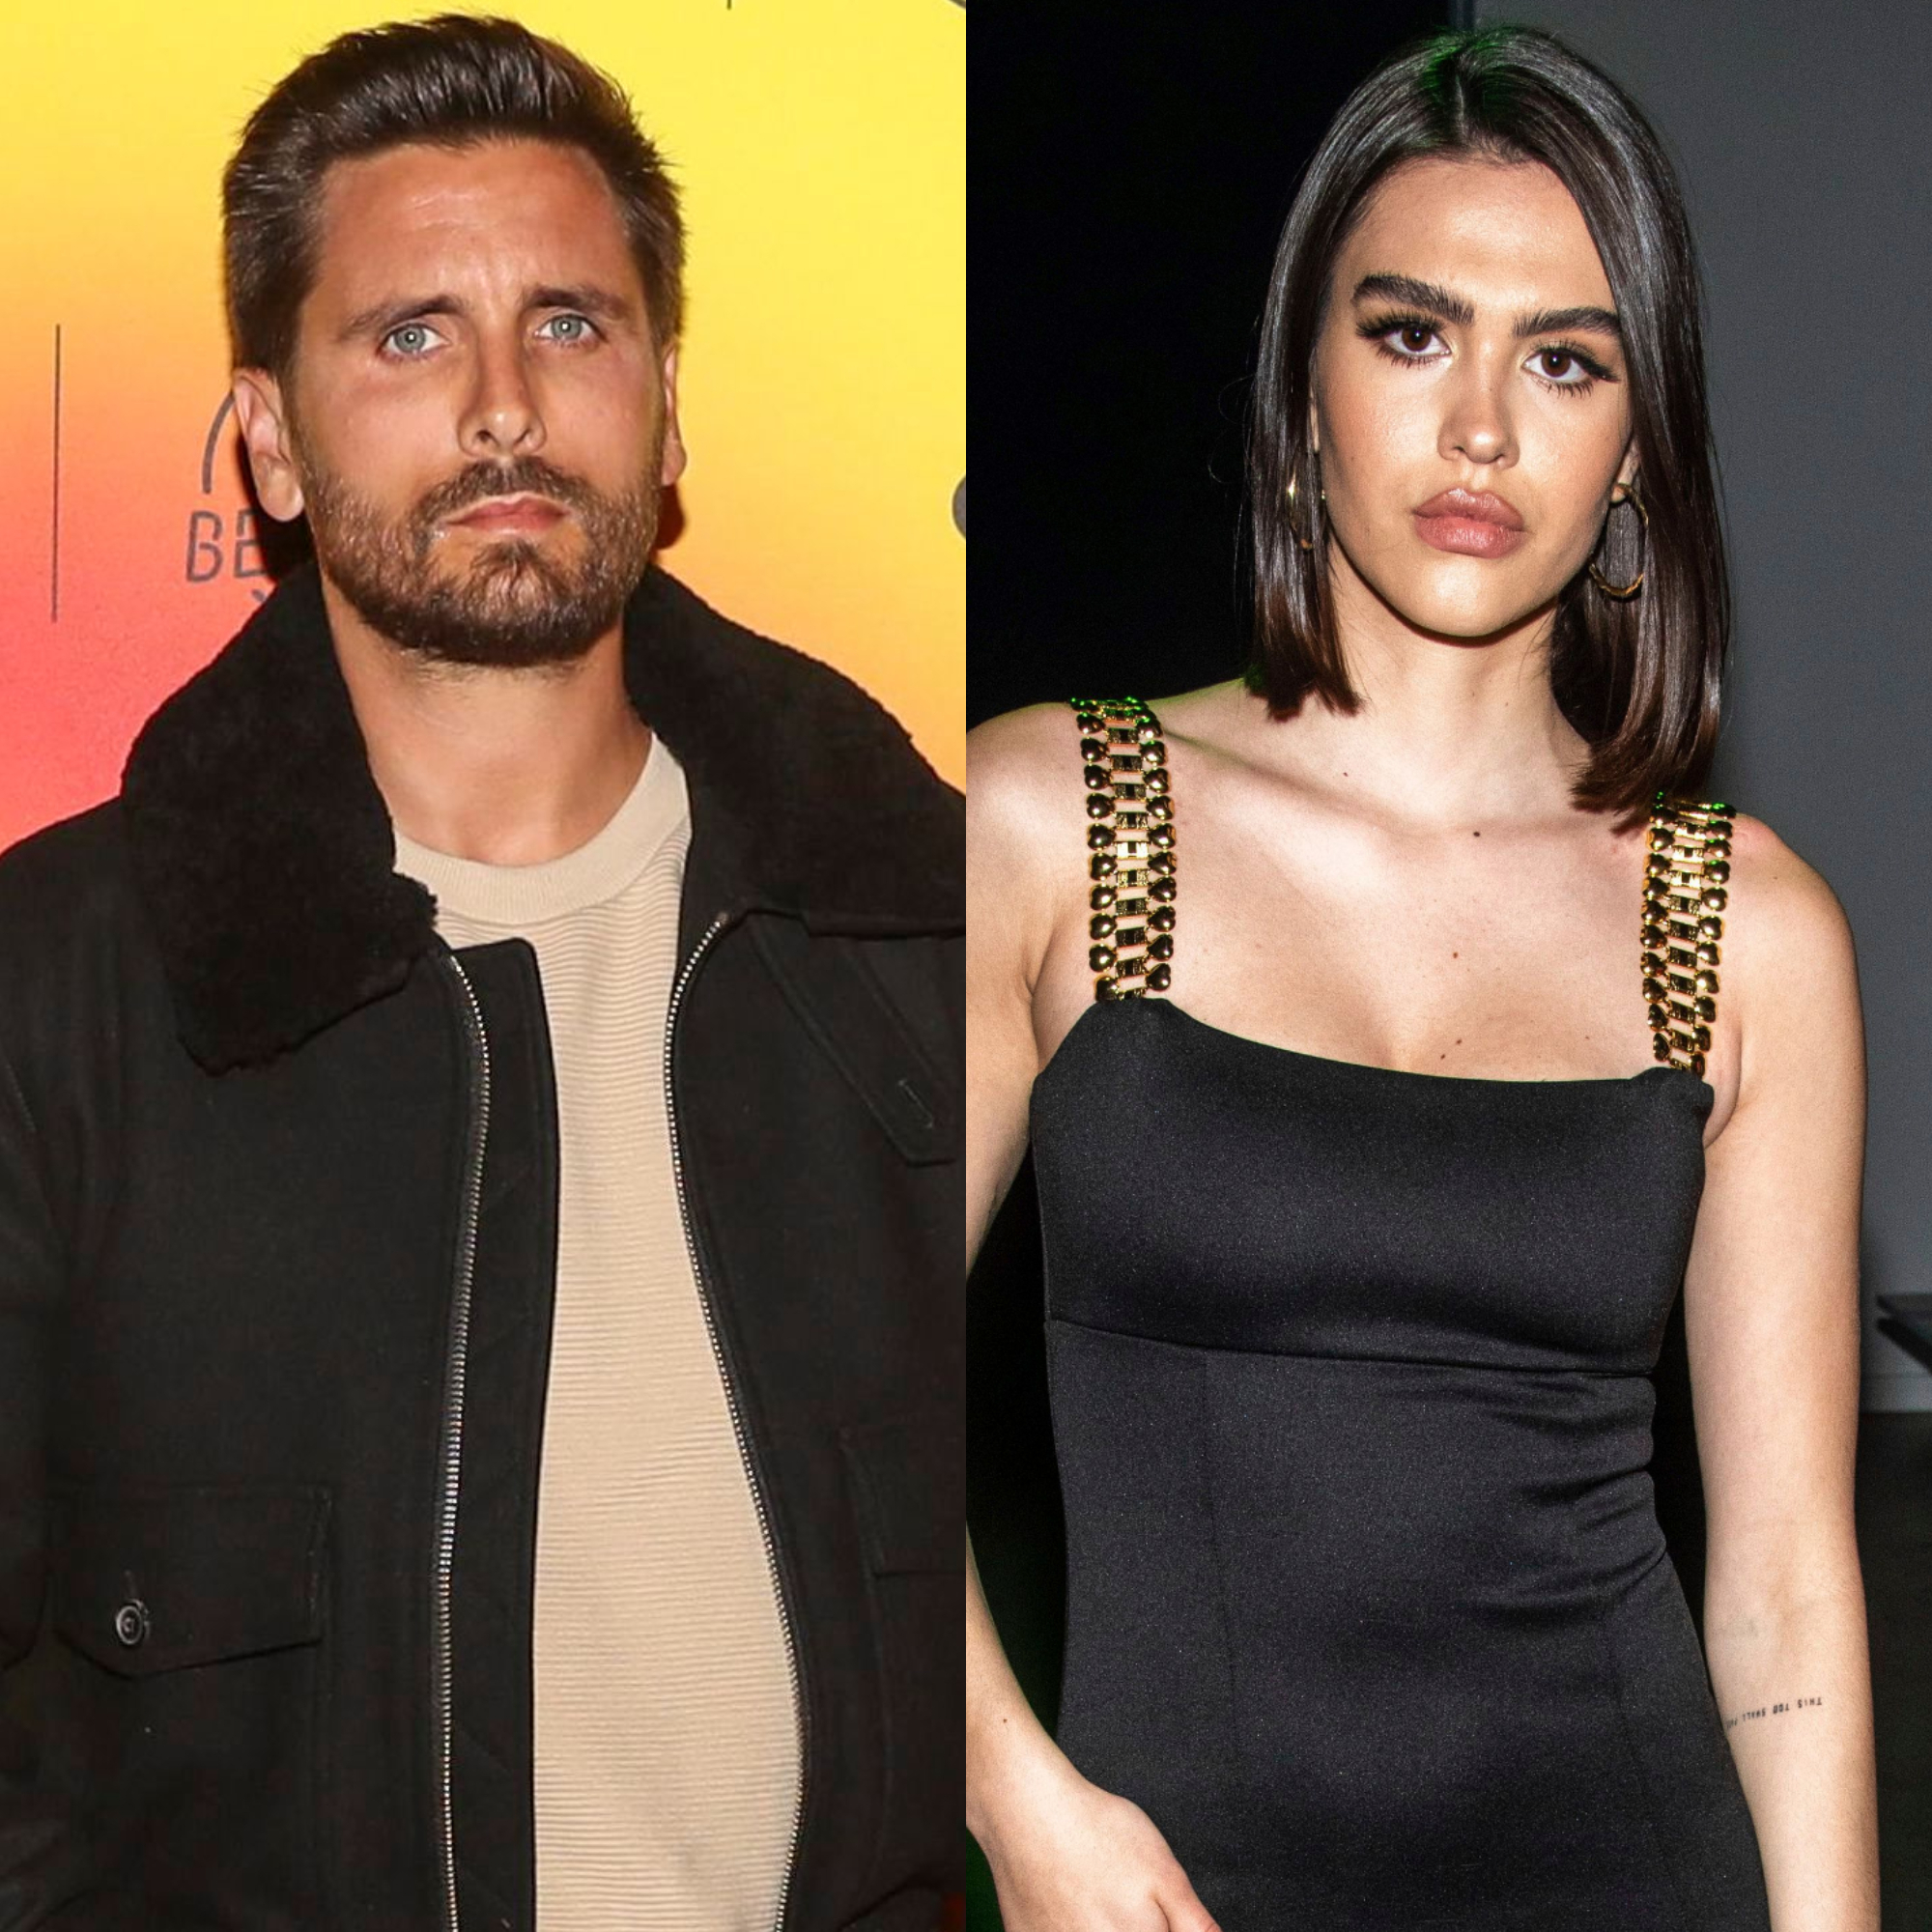 Scott Disick And Amelia Hamlin – Here's The REAL Reason They Went House Hunting Together!